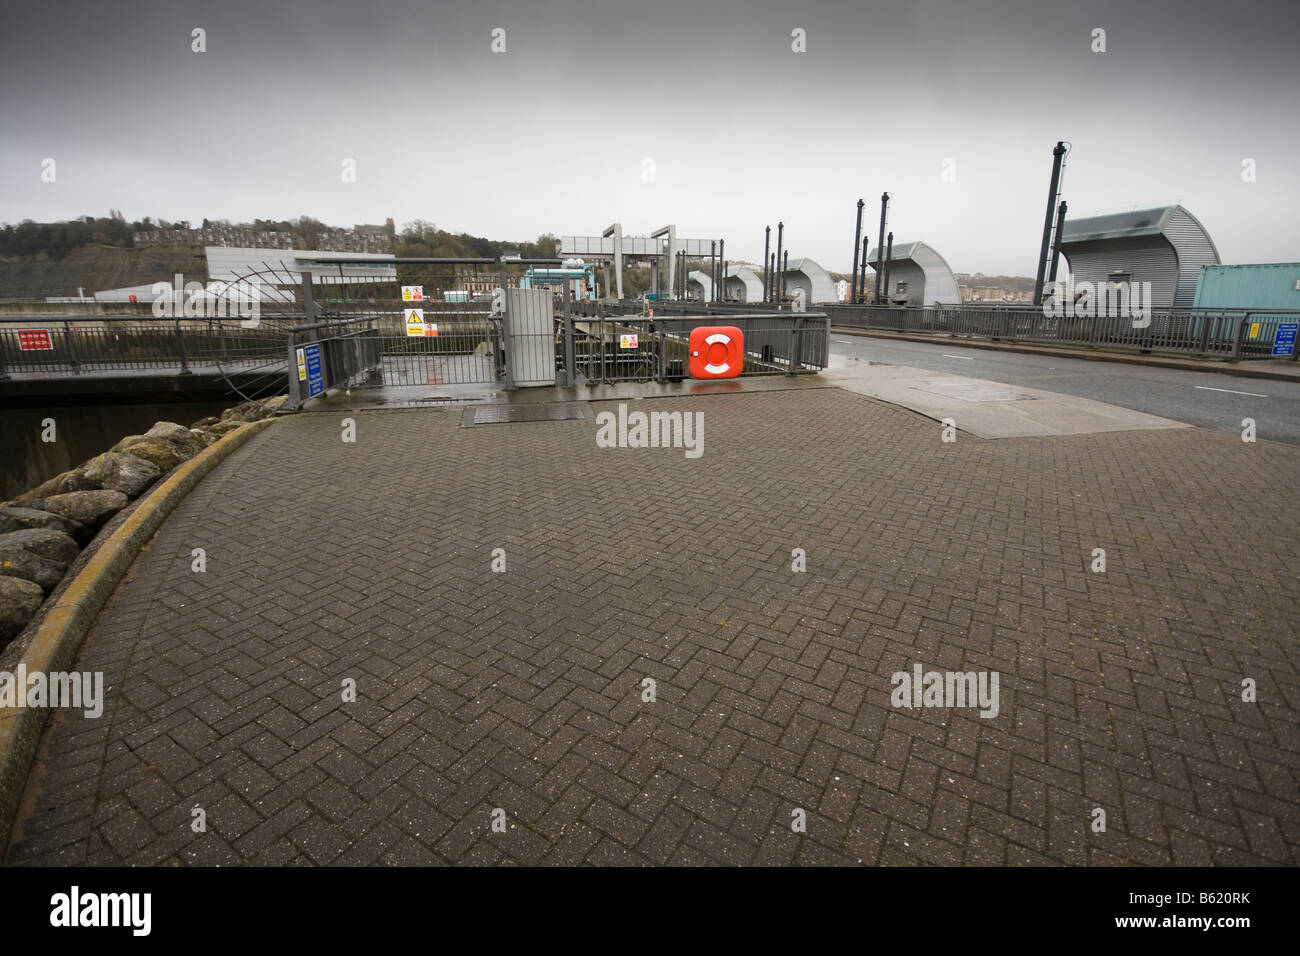 View of Cardiff barrage in Cloudy conditions in Wales, United Kingdom - Stock Image